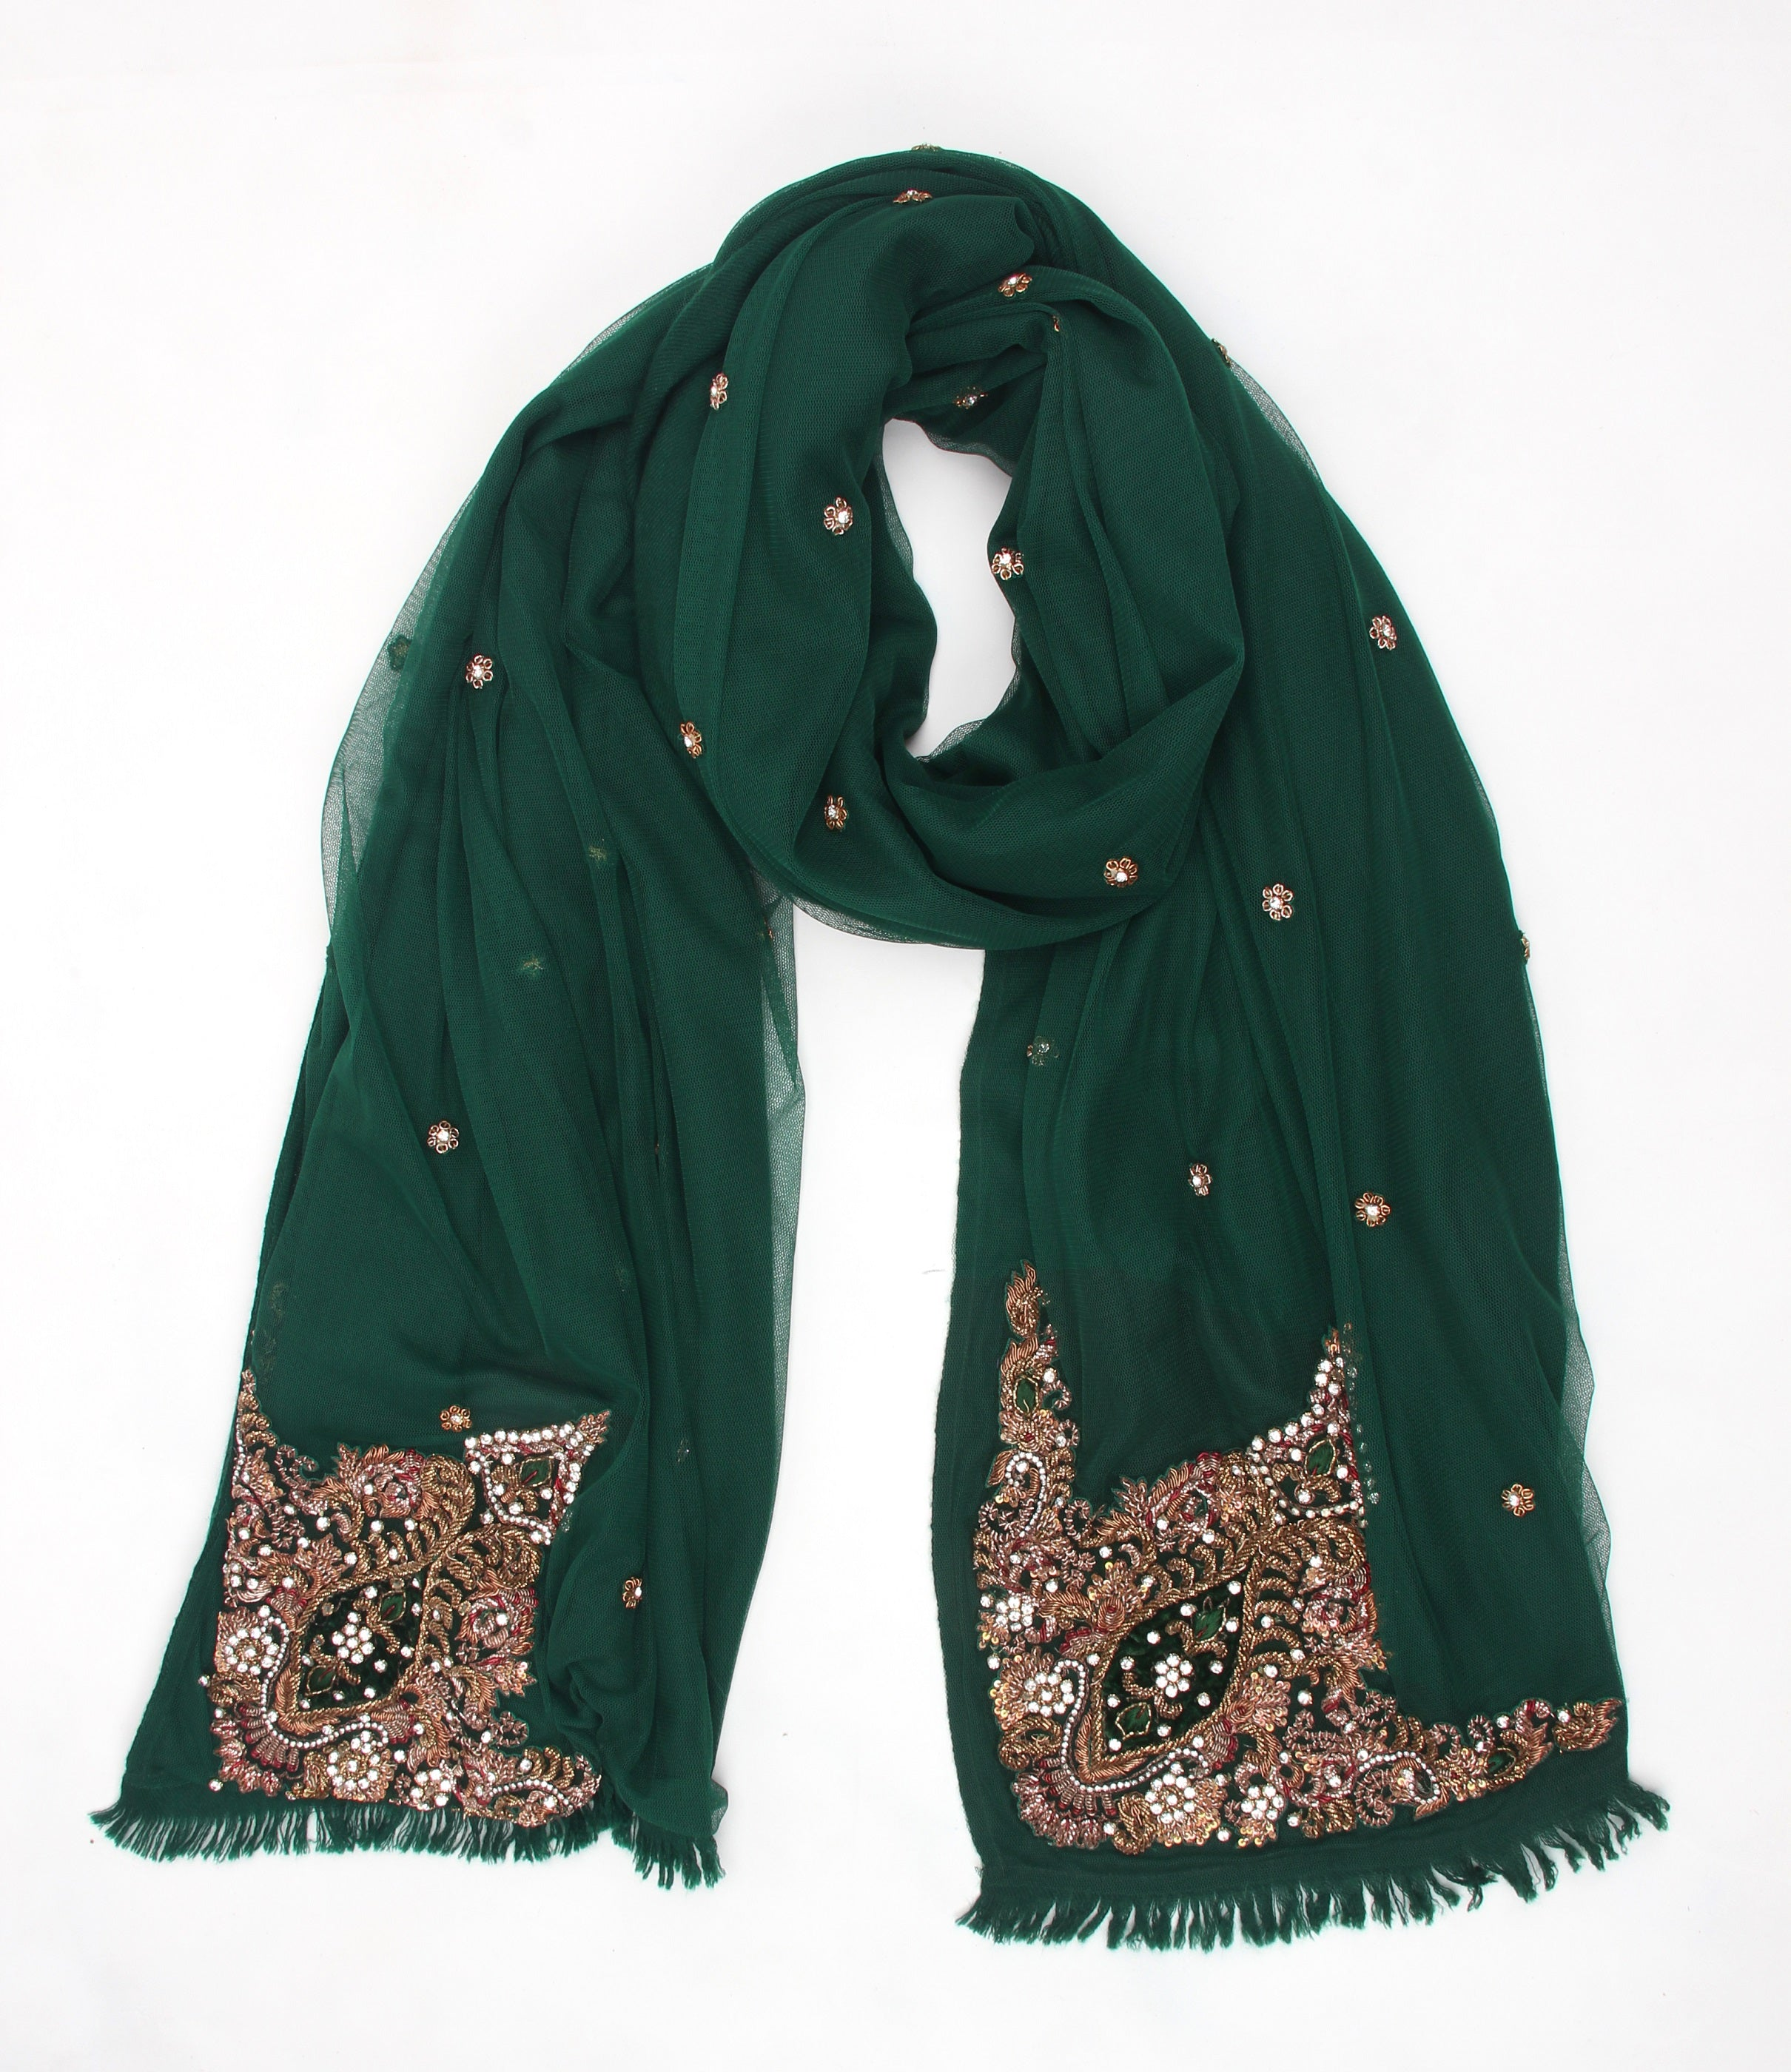 Pashma Sequenced layered scarf crafted in Cashmere